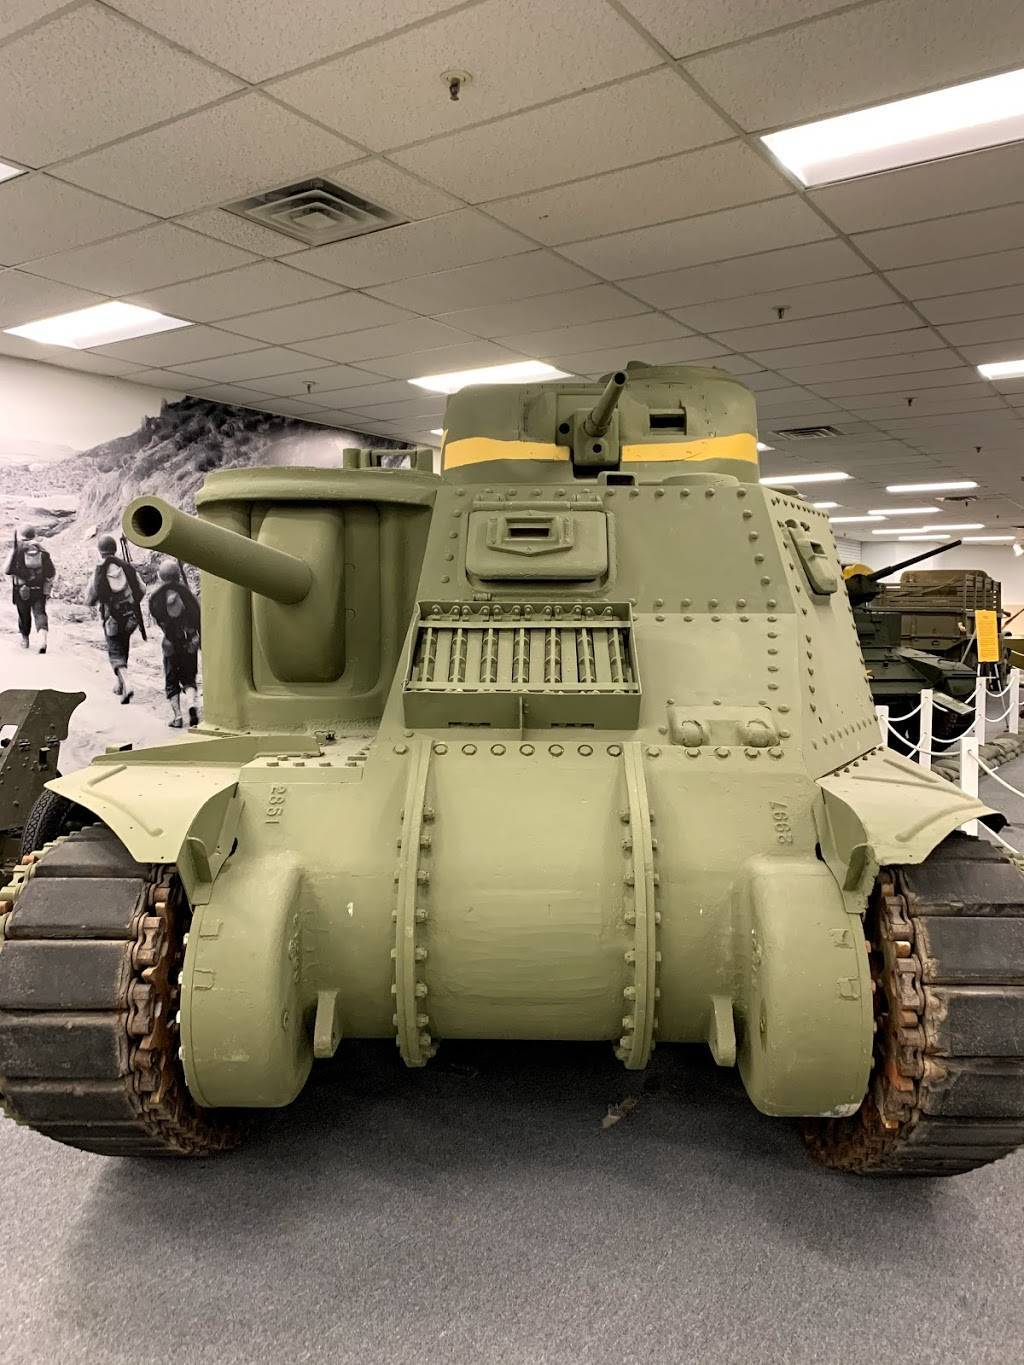 Fort Bliss Museum - museum    Photo 6 of 15   Address: 1735, Marshall Rd, Fort Bliss, TX 79906, USA   Phone: (915) 568-5412